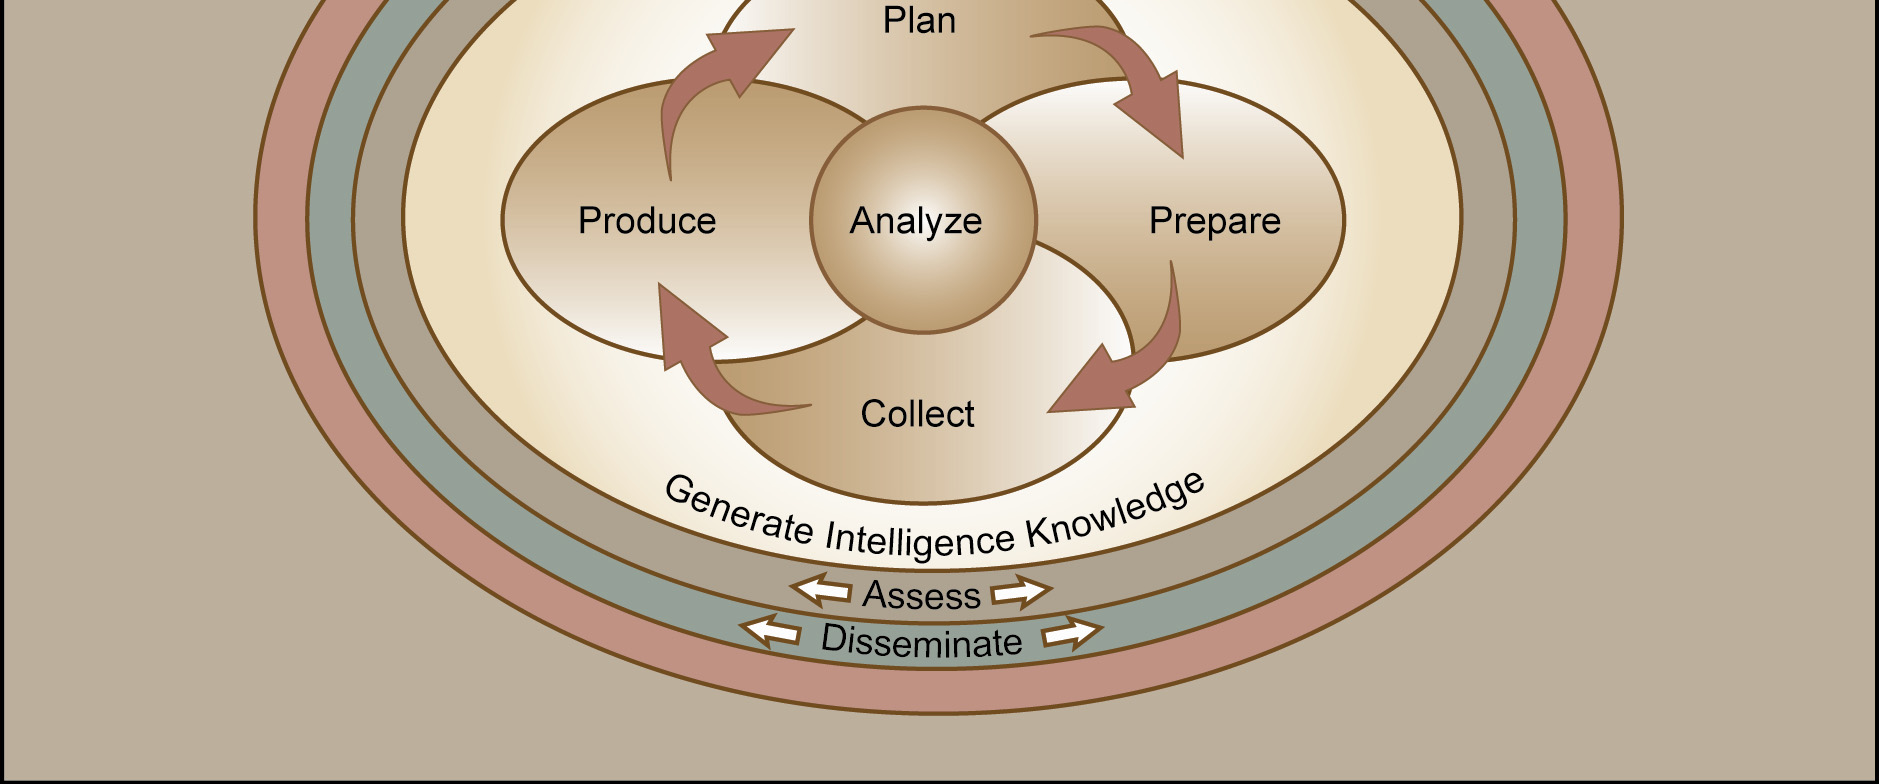 Additionally, there are four continuing activities that occur across the four intelligence process steps: Generate intelligence knowledge. Analyze. Assess. Disseminate. C-8.